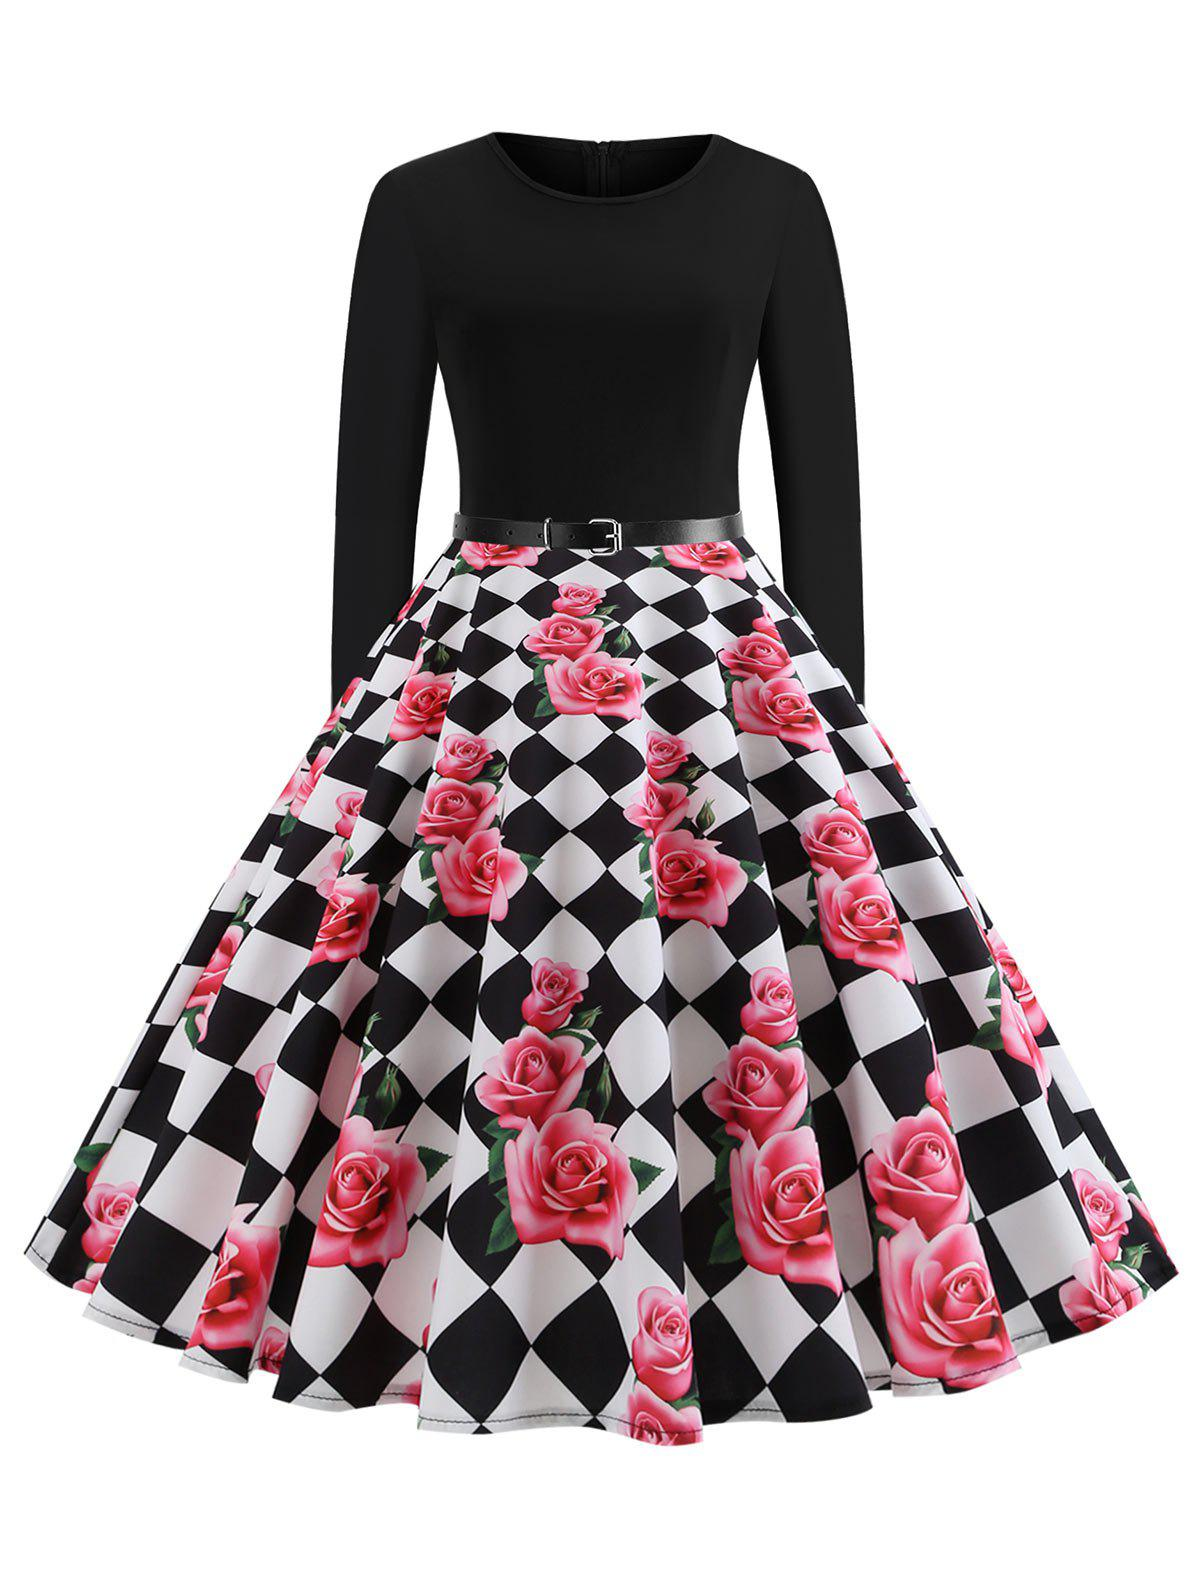 Checkered Floral Long Sleeve Plus Size Vintage Dress - PINK 3X